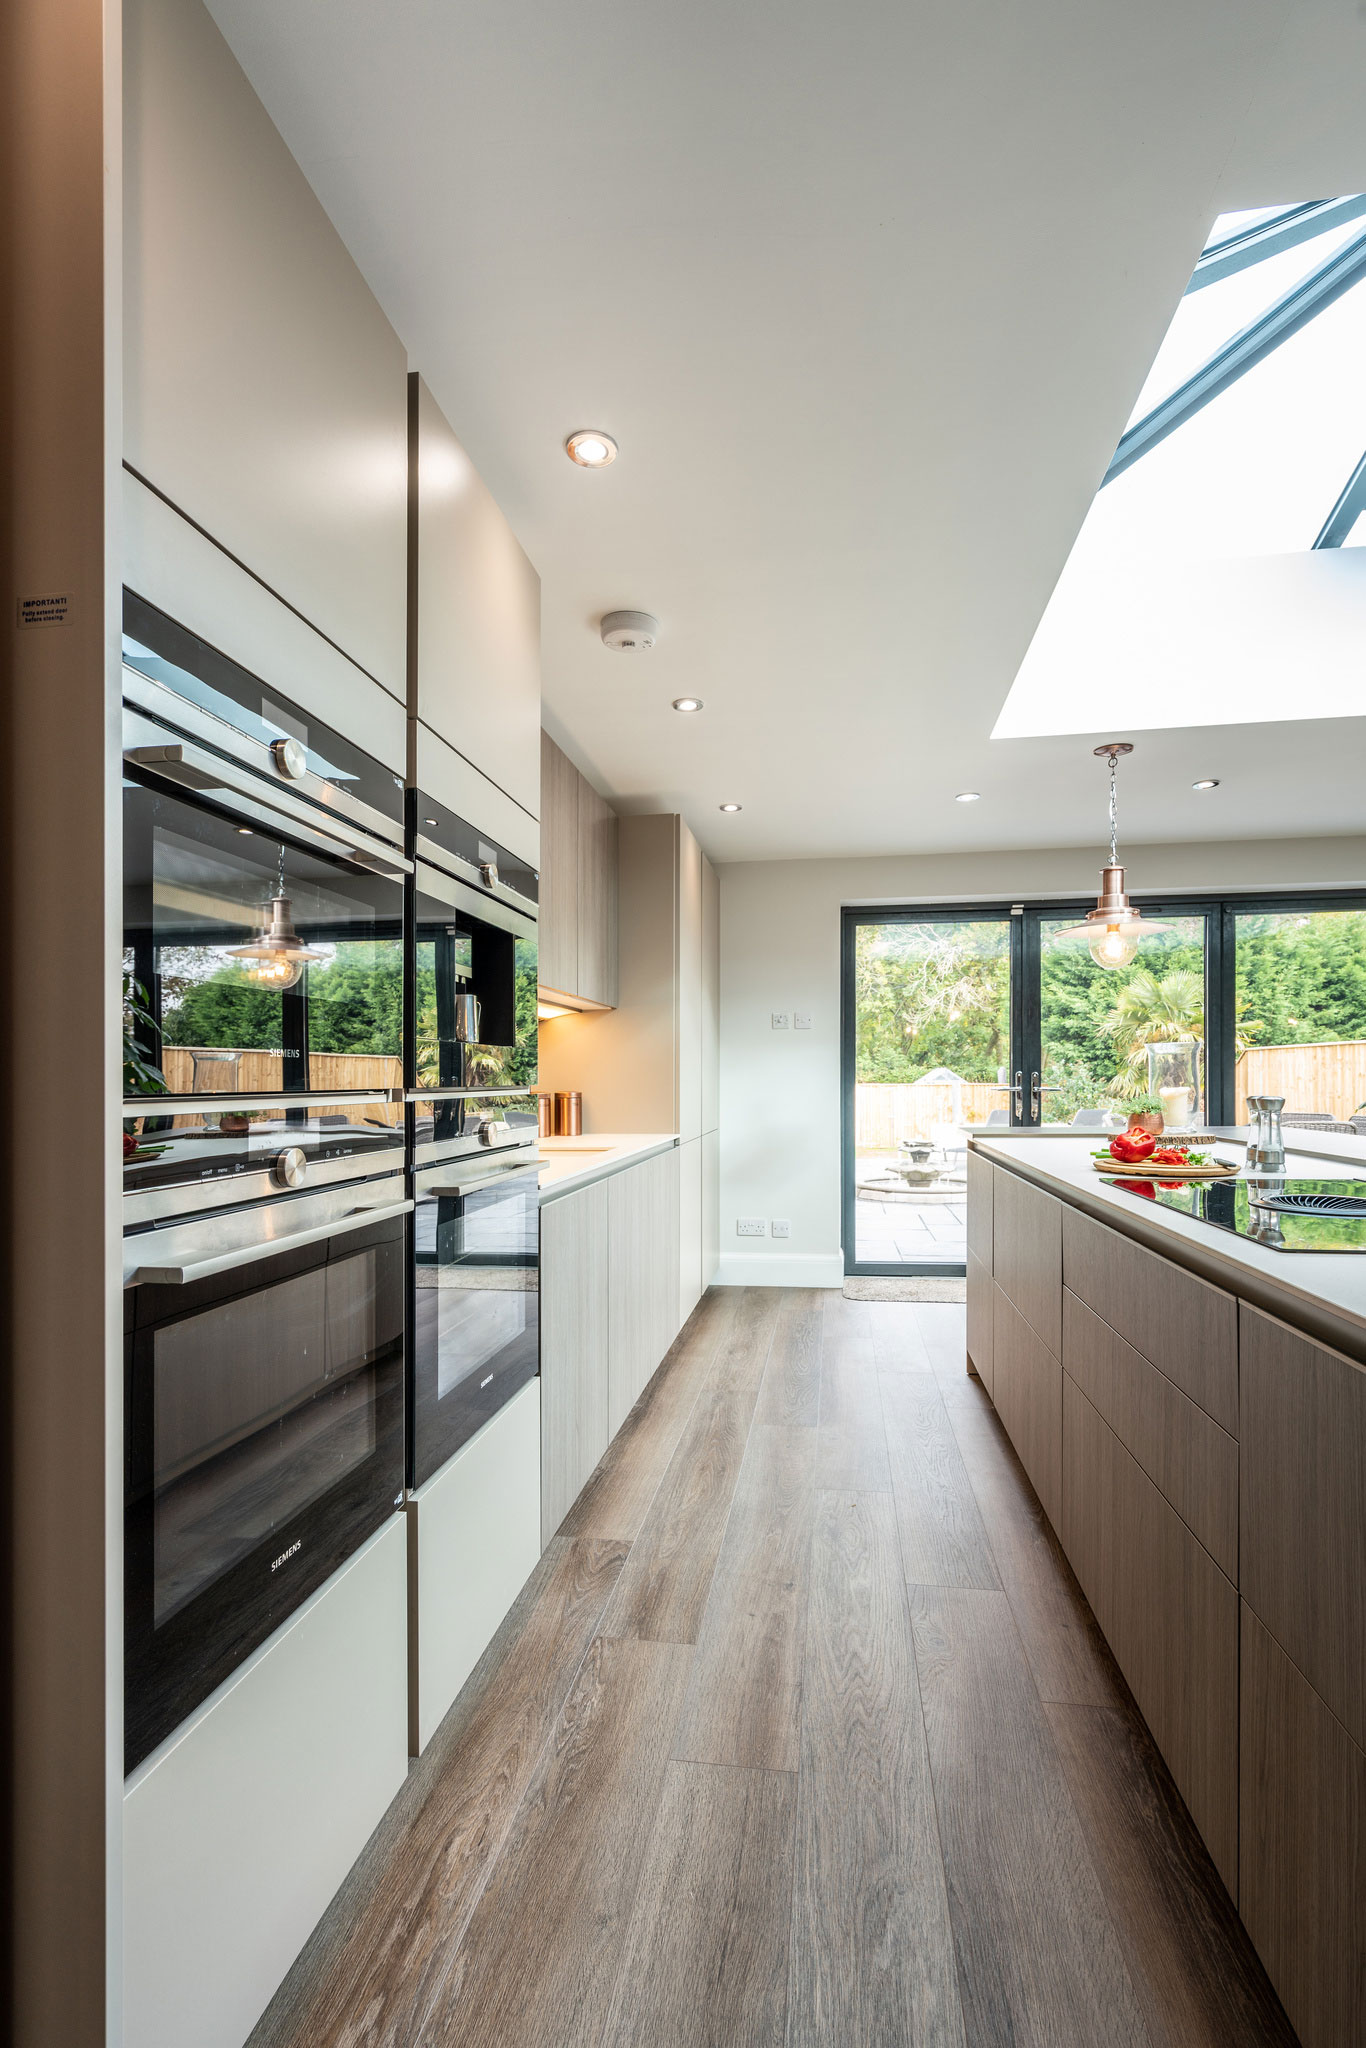 Image of Myers Touch Daniels Kitchen 01102 ZF 2442 14358 1 043 in A space designed for socialising - Cosentino